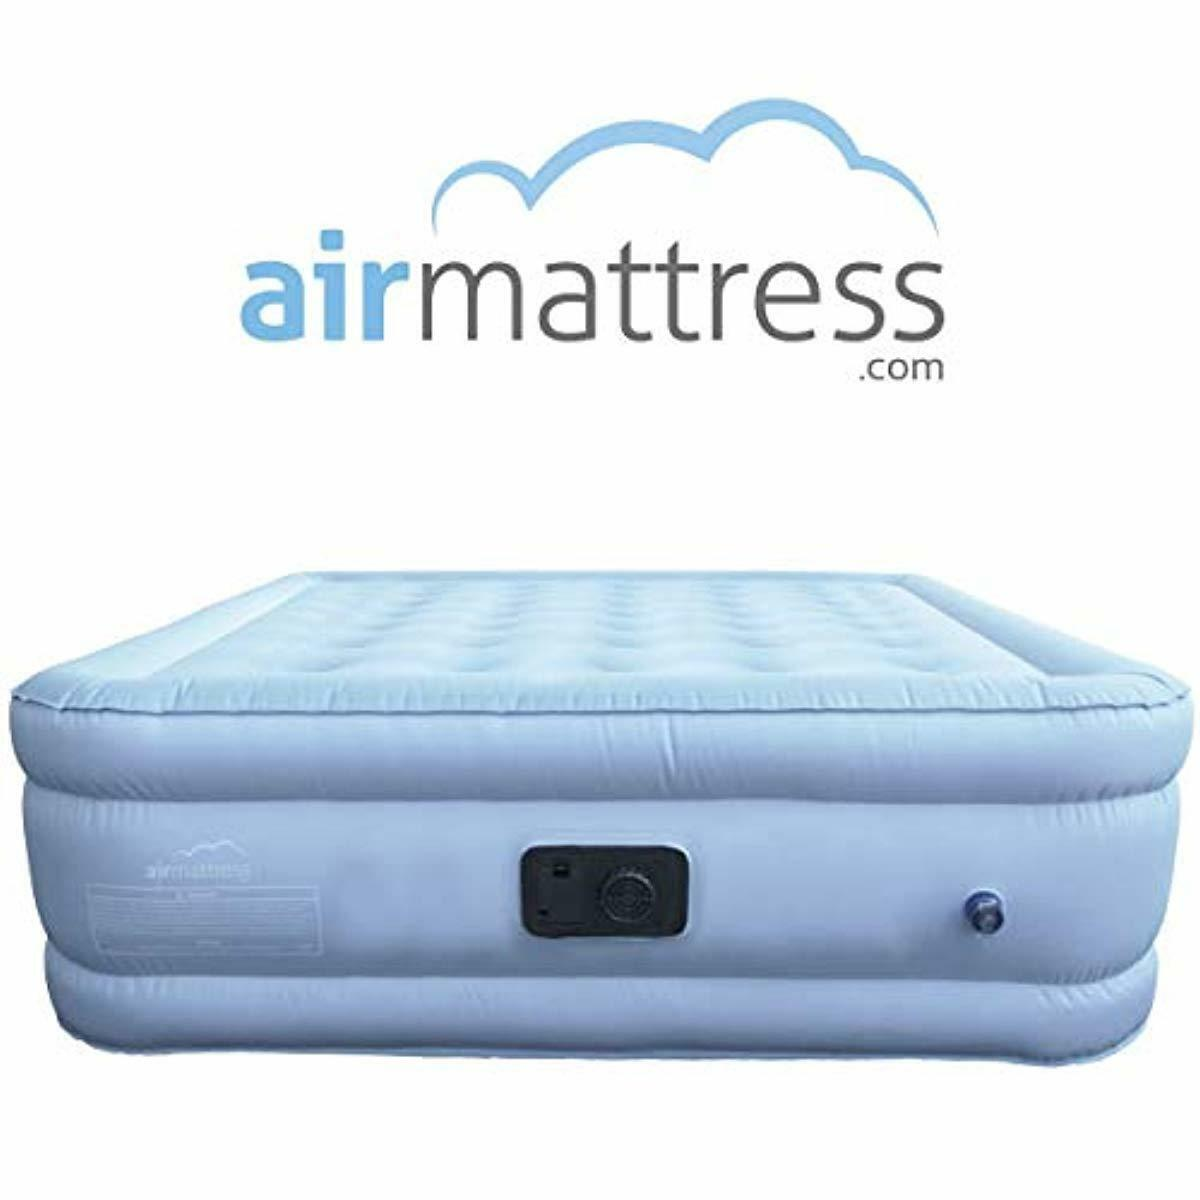 Air Mattress KING size - Best Choice RAISED Inflatable Bed w